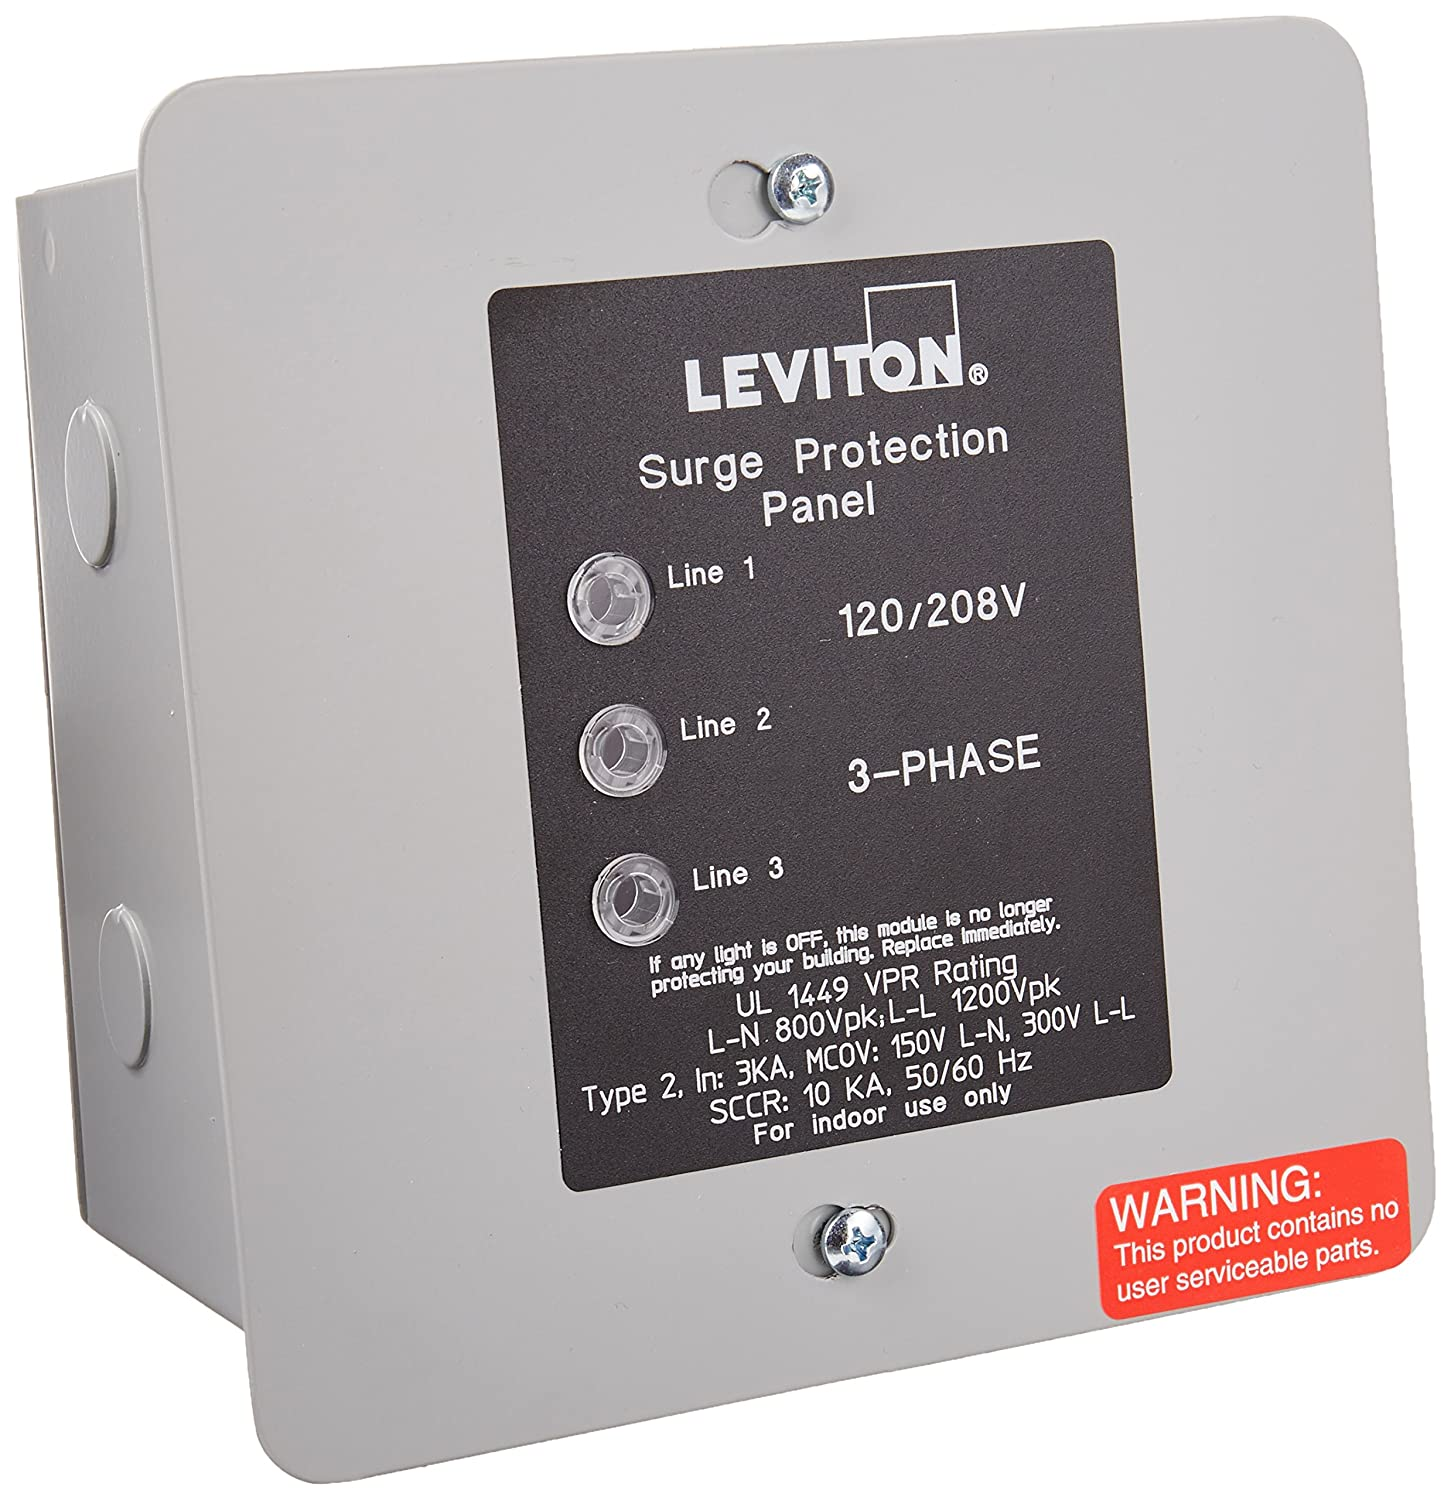 919sn0p9PHL._SL1500_ circuit breaker panels amazon com electrical breakers, load ge fuse box at gsmx.co